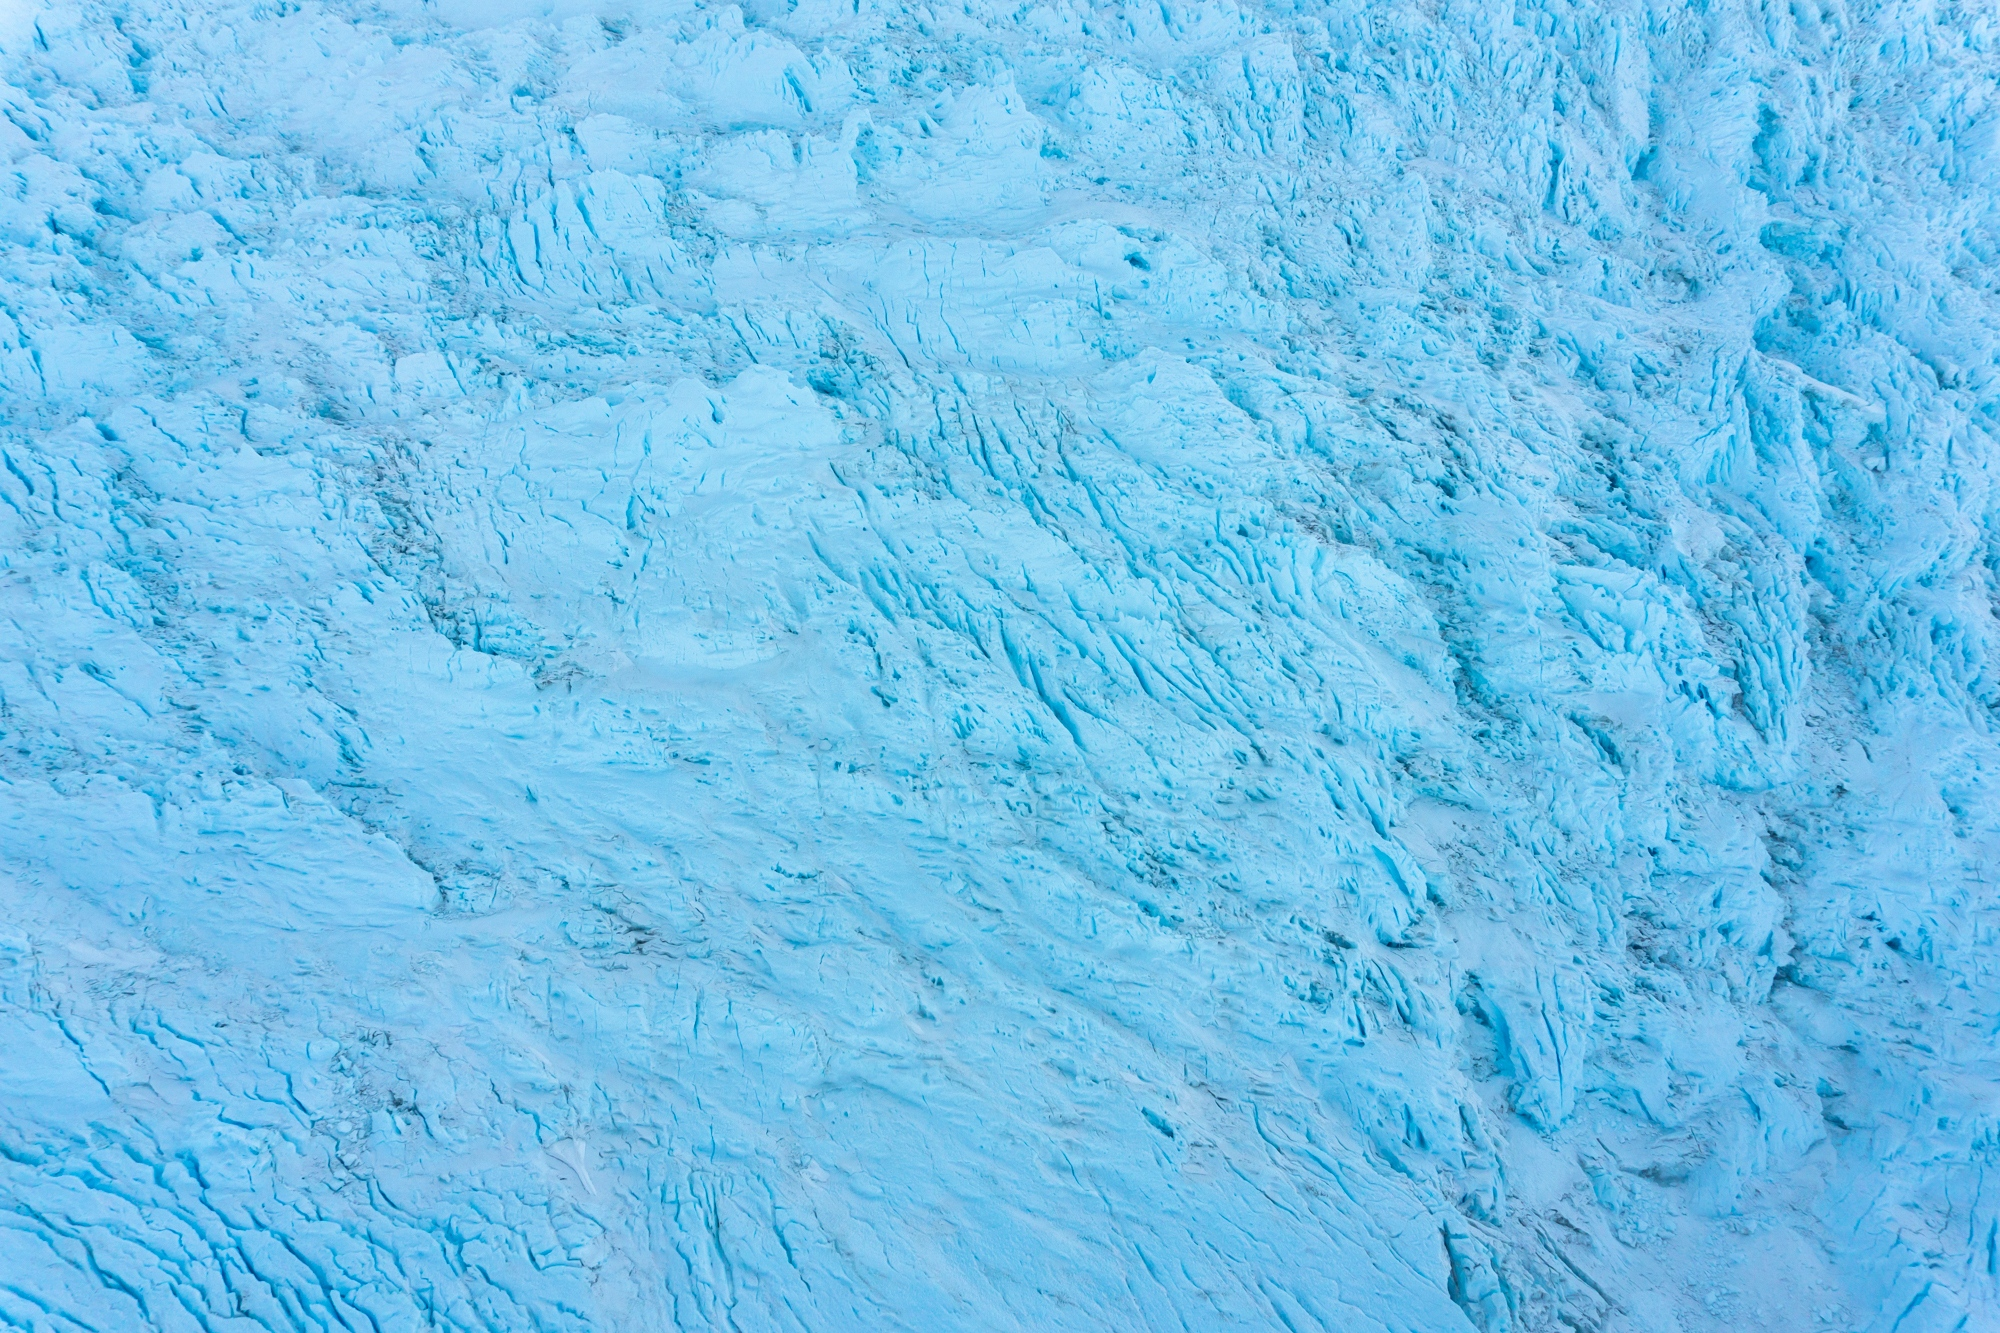 Aerial view of unnamed glacier. December 2017.